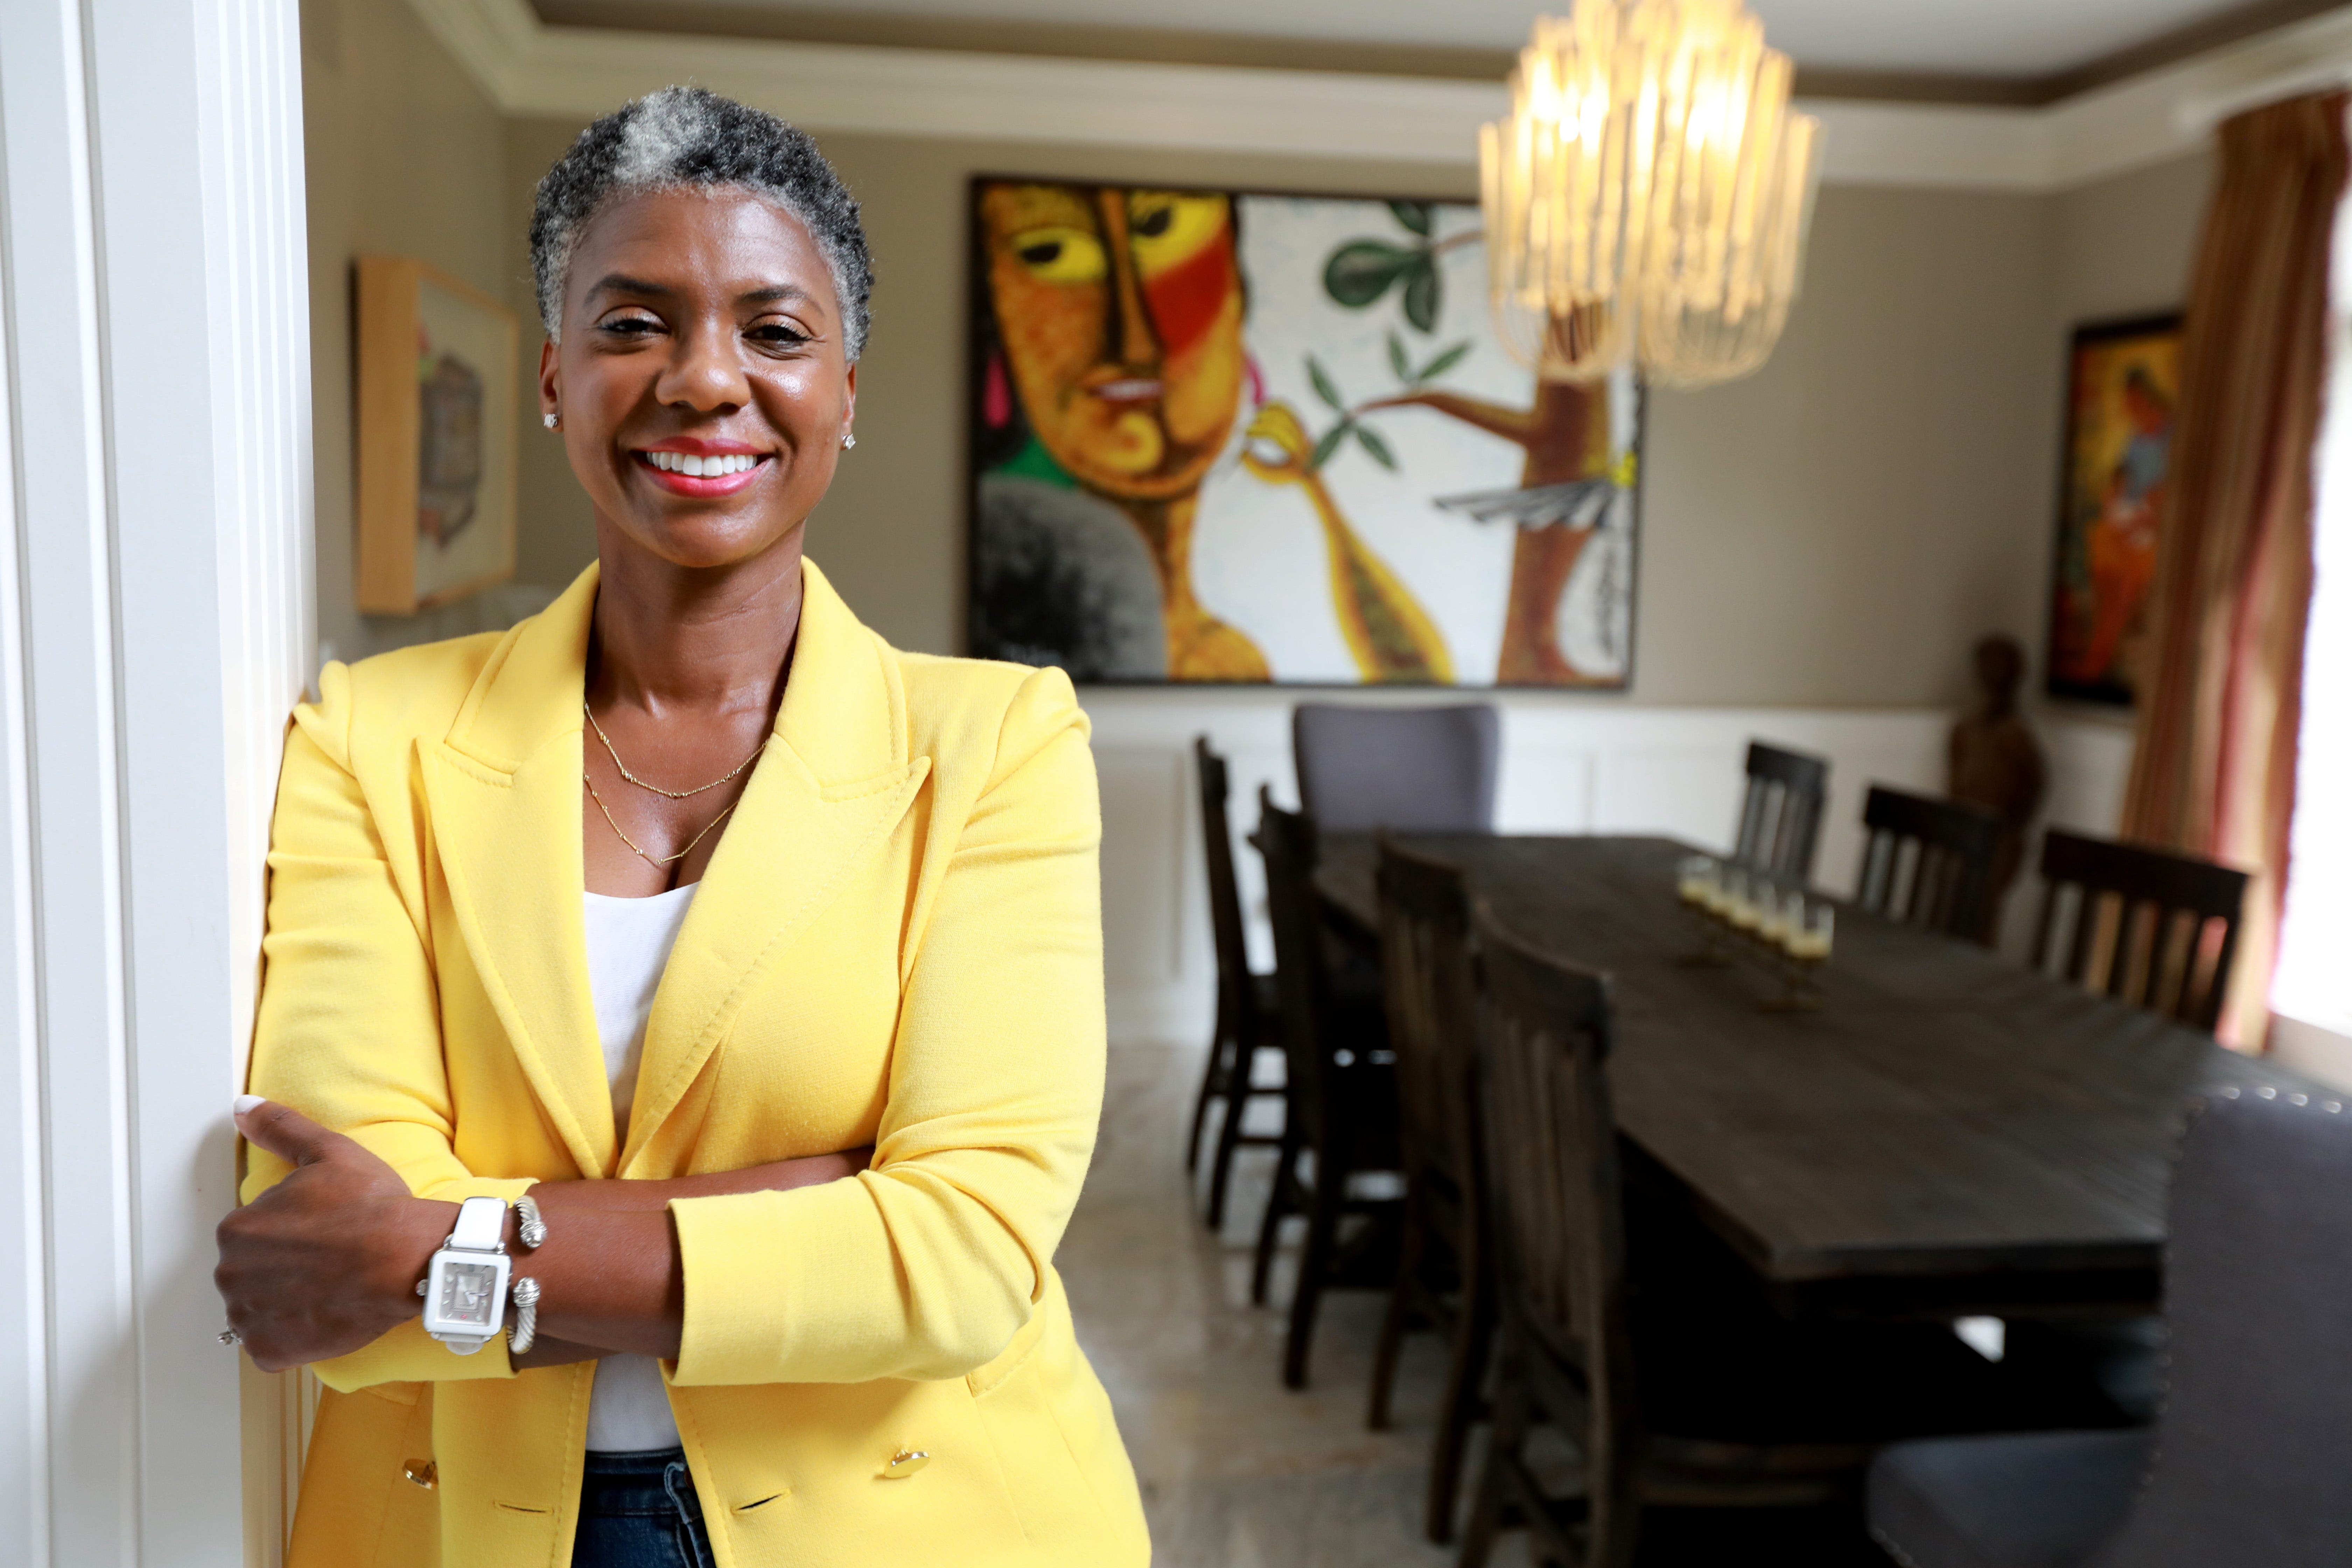 Janelle Coleman, who is currently American Electric Power vice president of corporate philanthropy and community engagement and president of the AEP Foundation, has experienced racism in the corporate world.